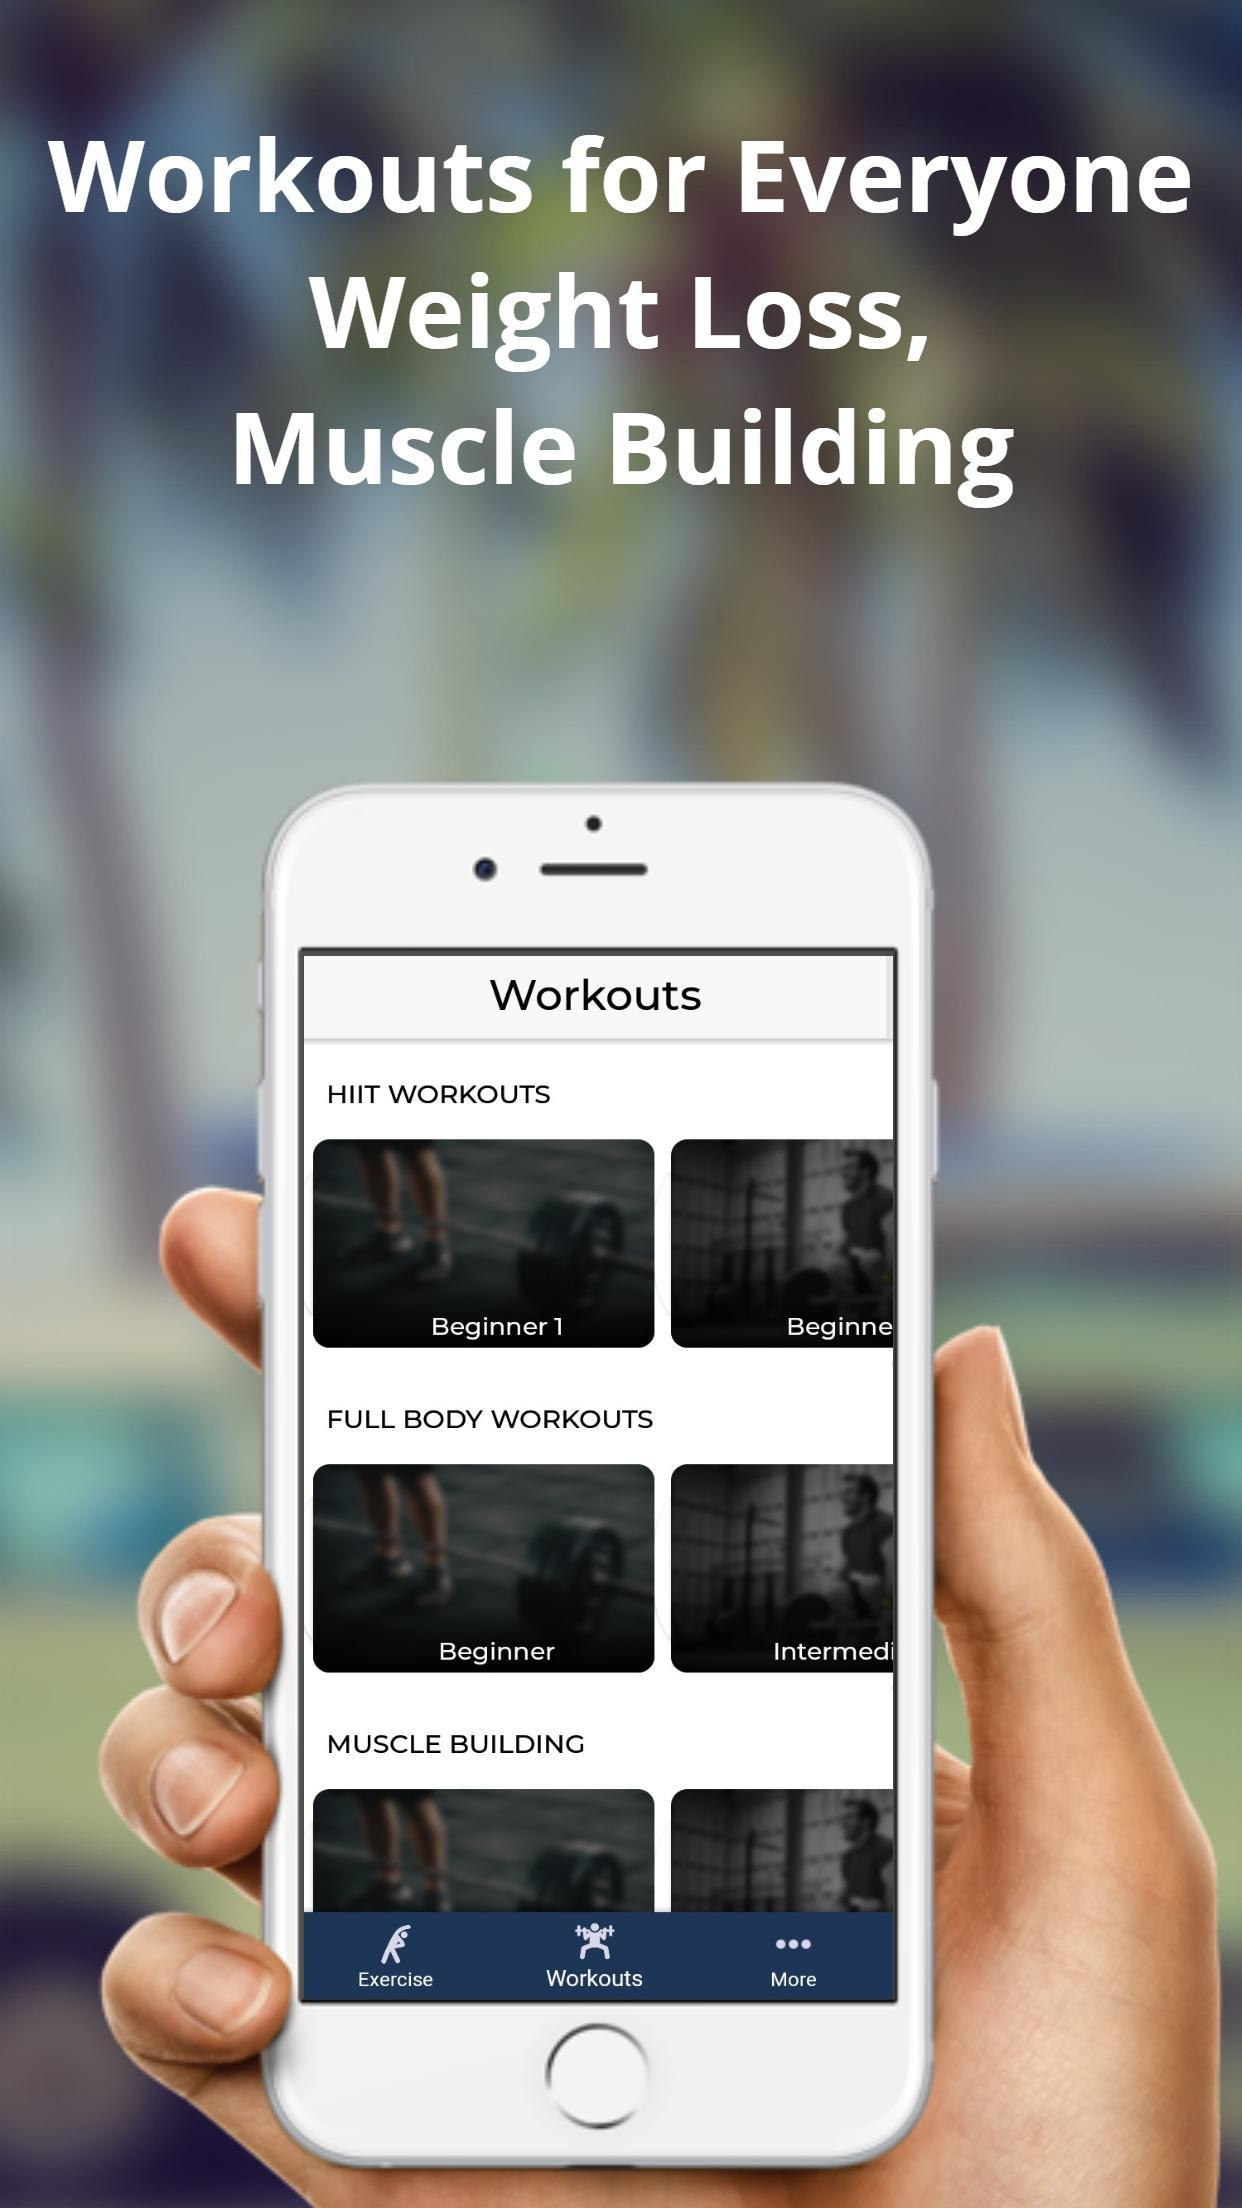 Fitness Plan- BodyBuilding & Weight Loss Diet Plan for